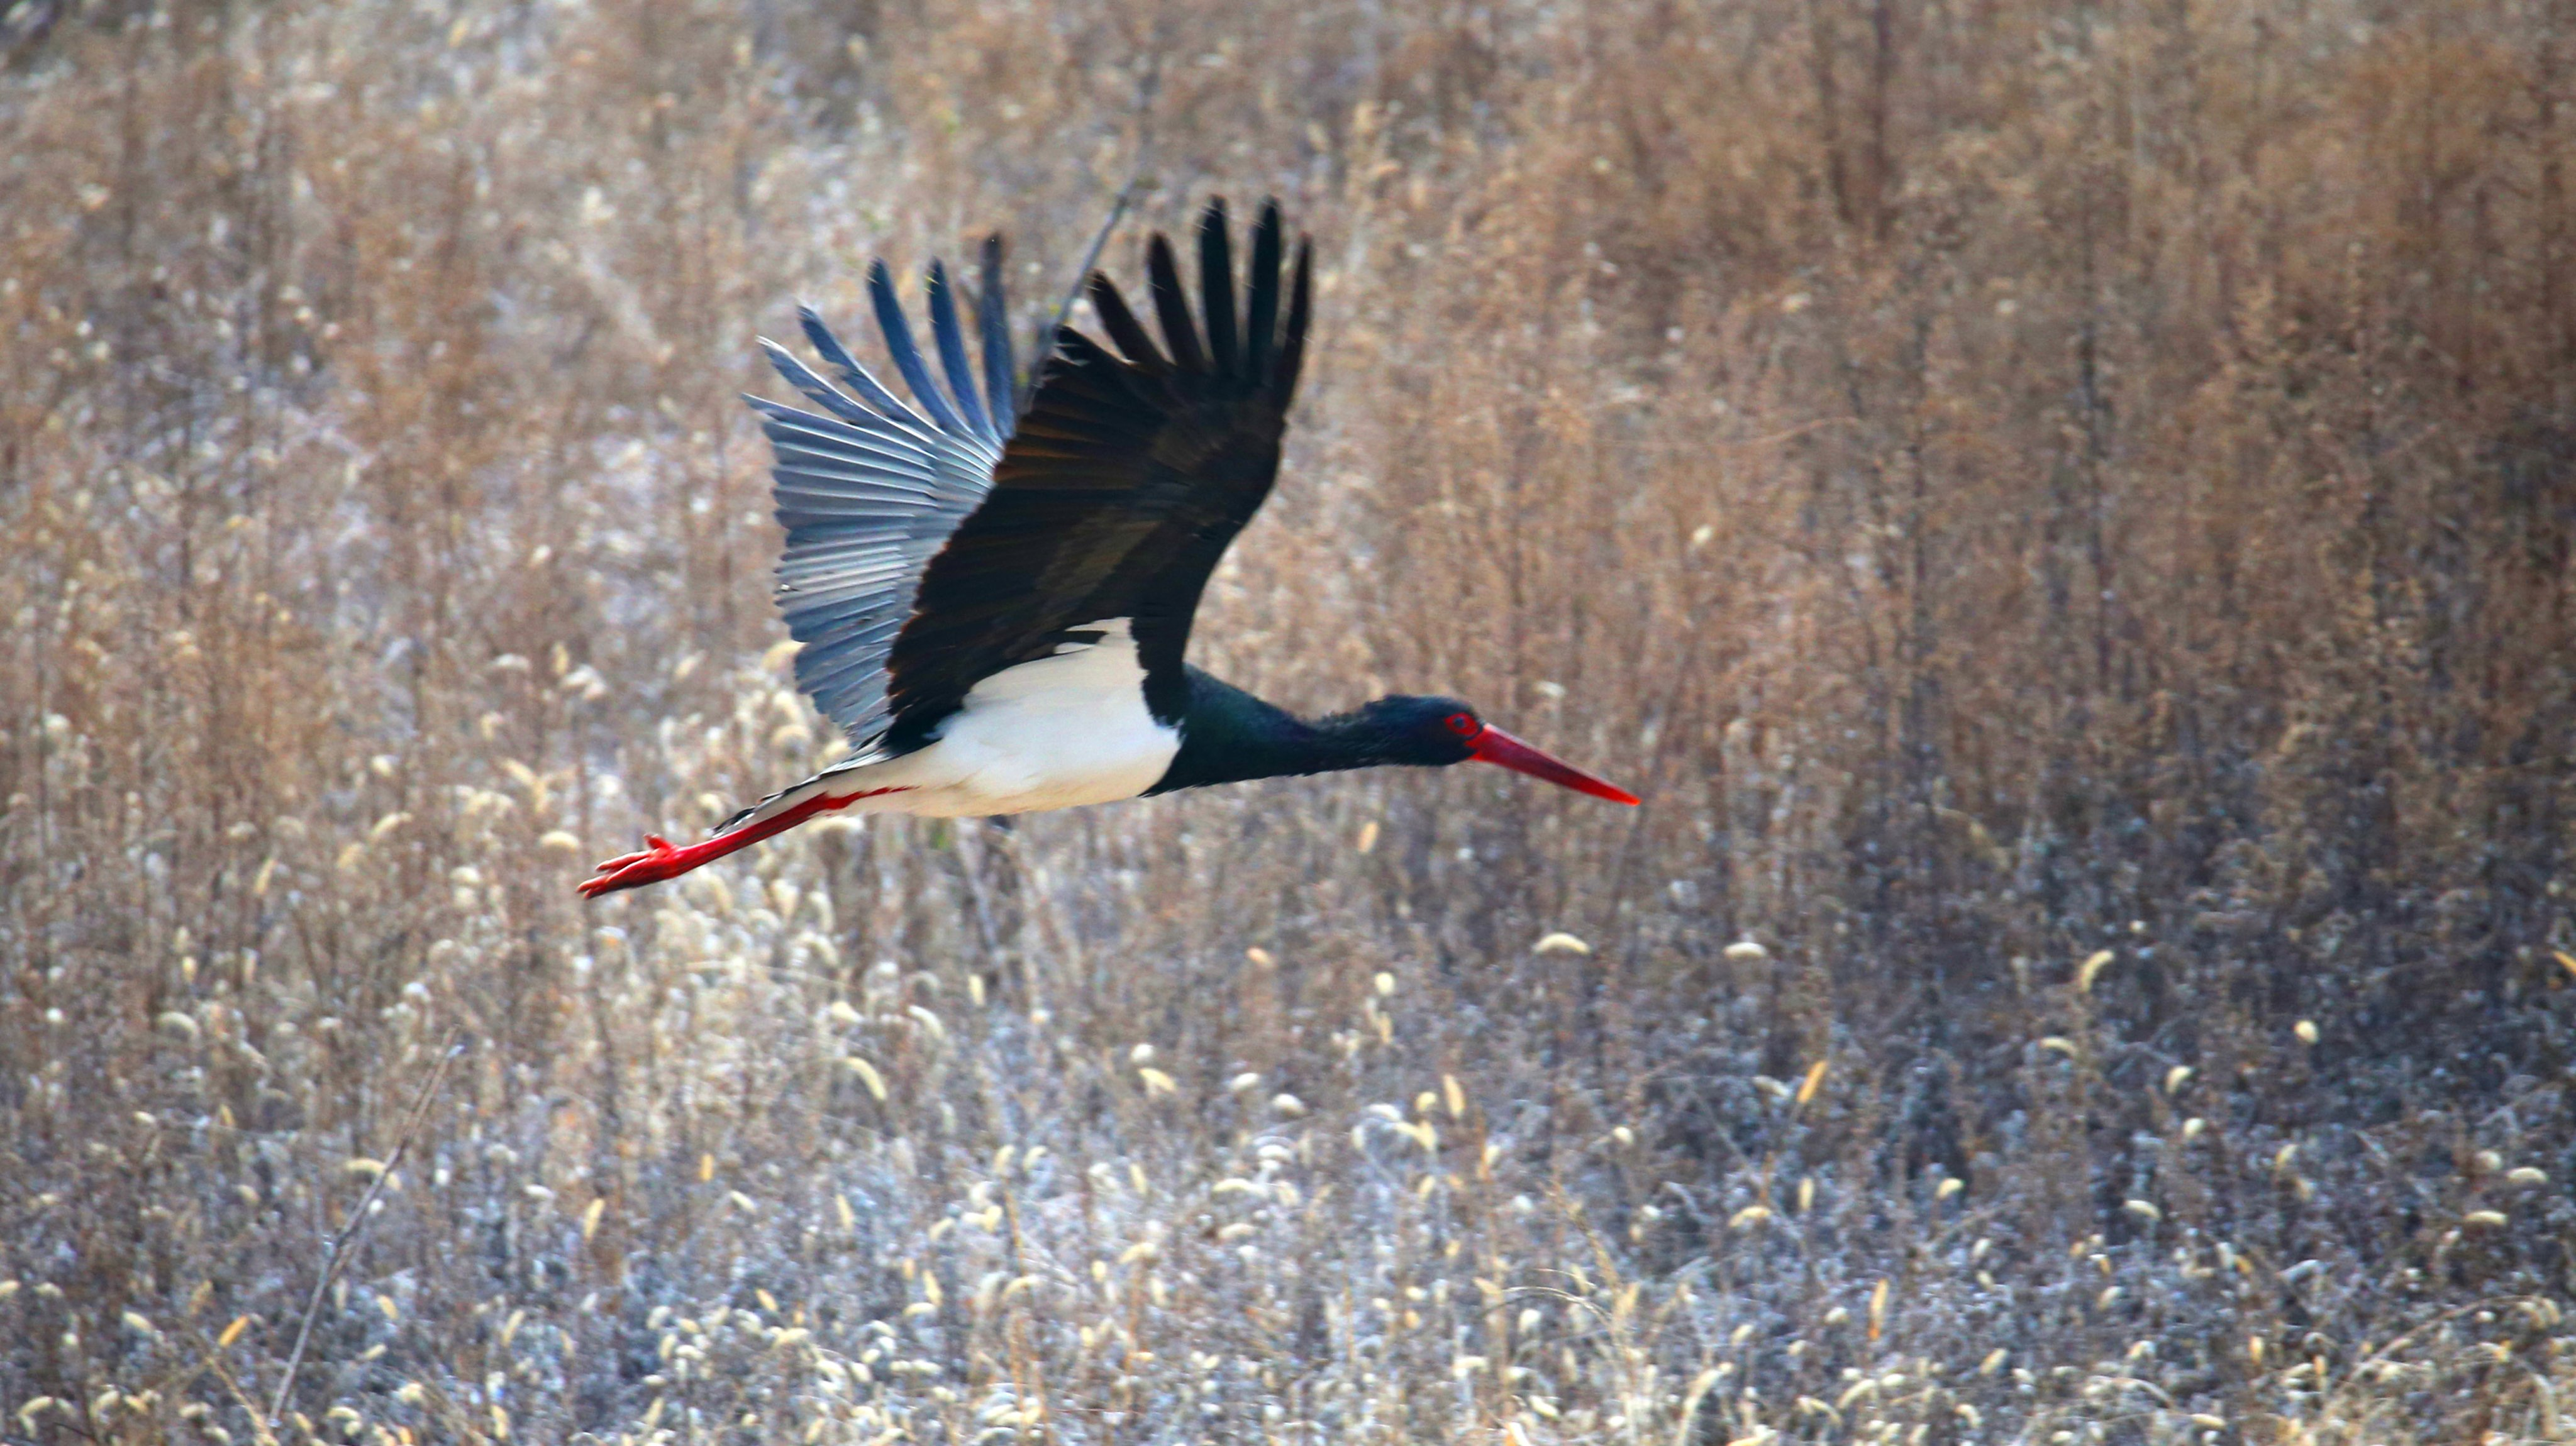 The first class national protected wild animal black storks are finding food in Beijing,China on 01th December, 2020